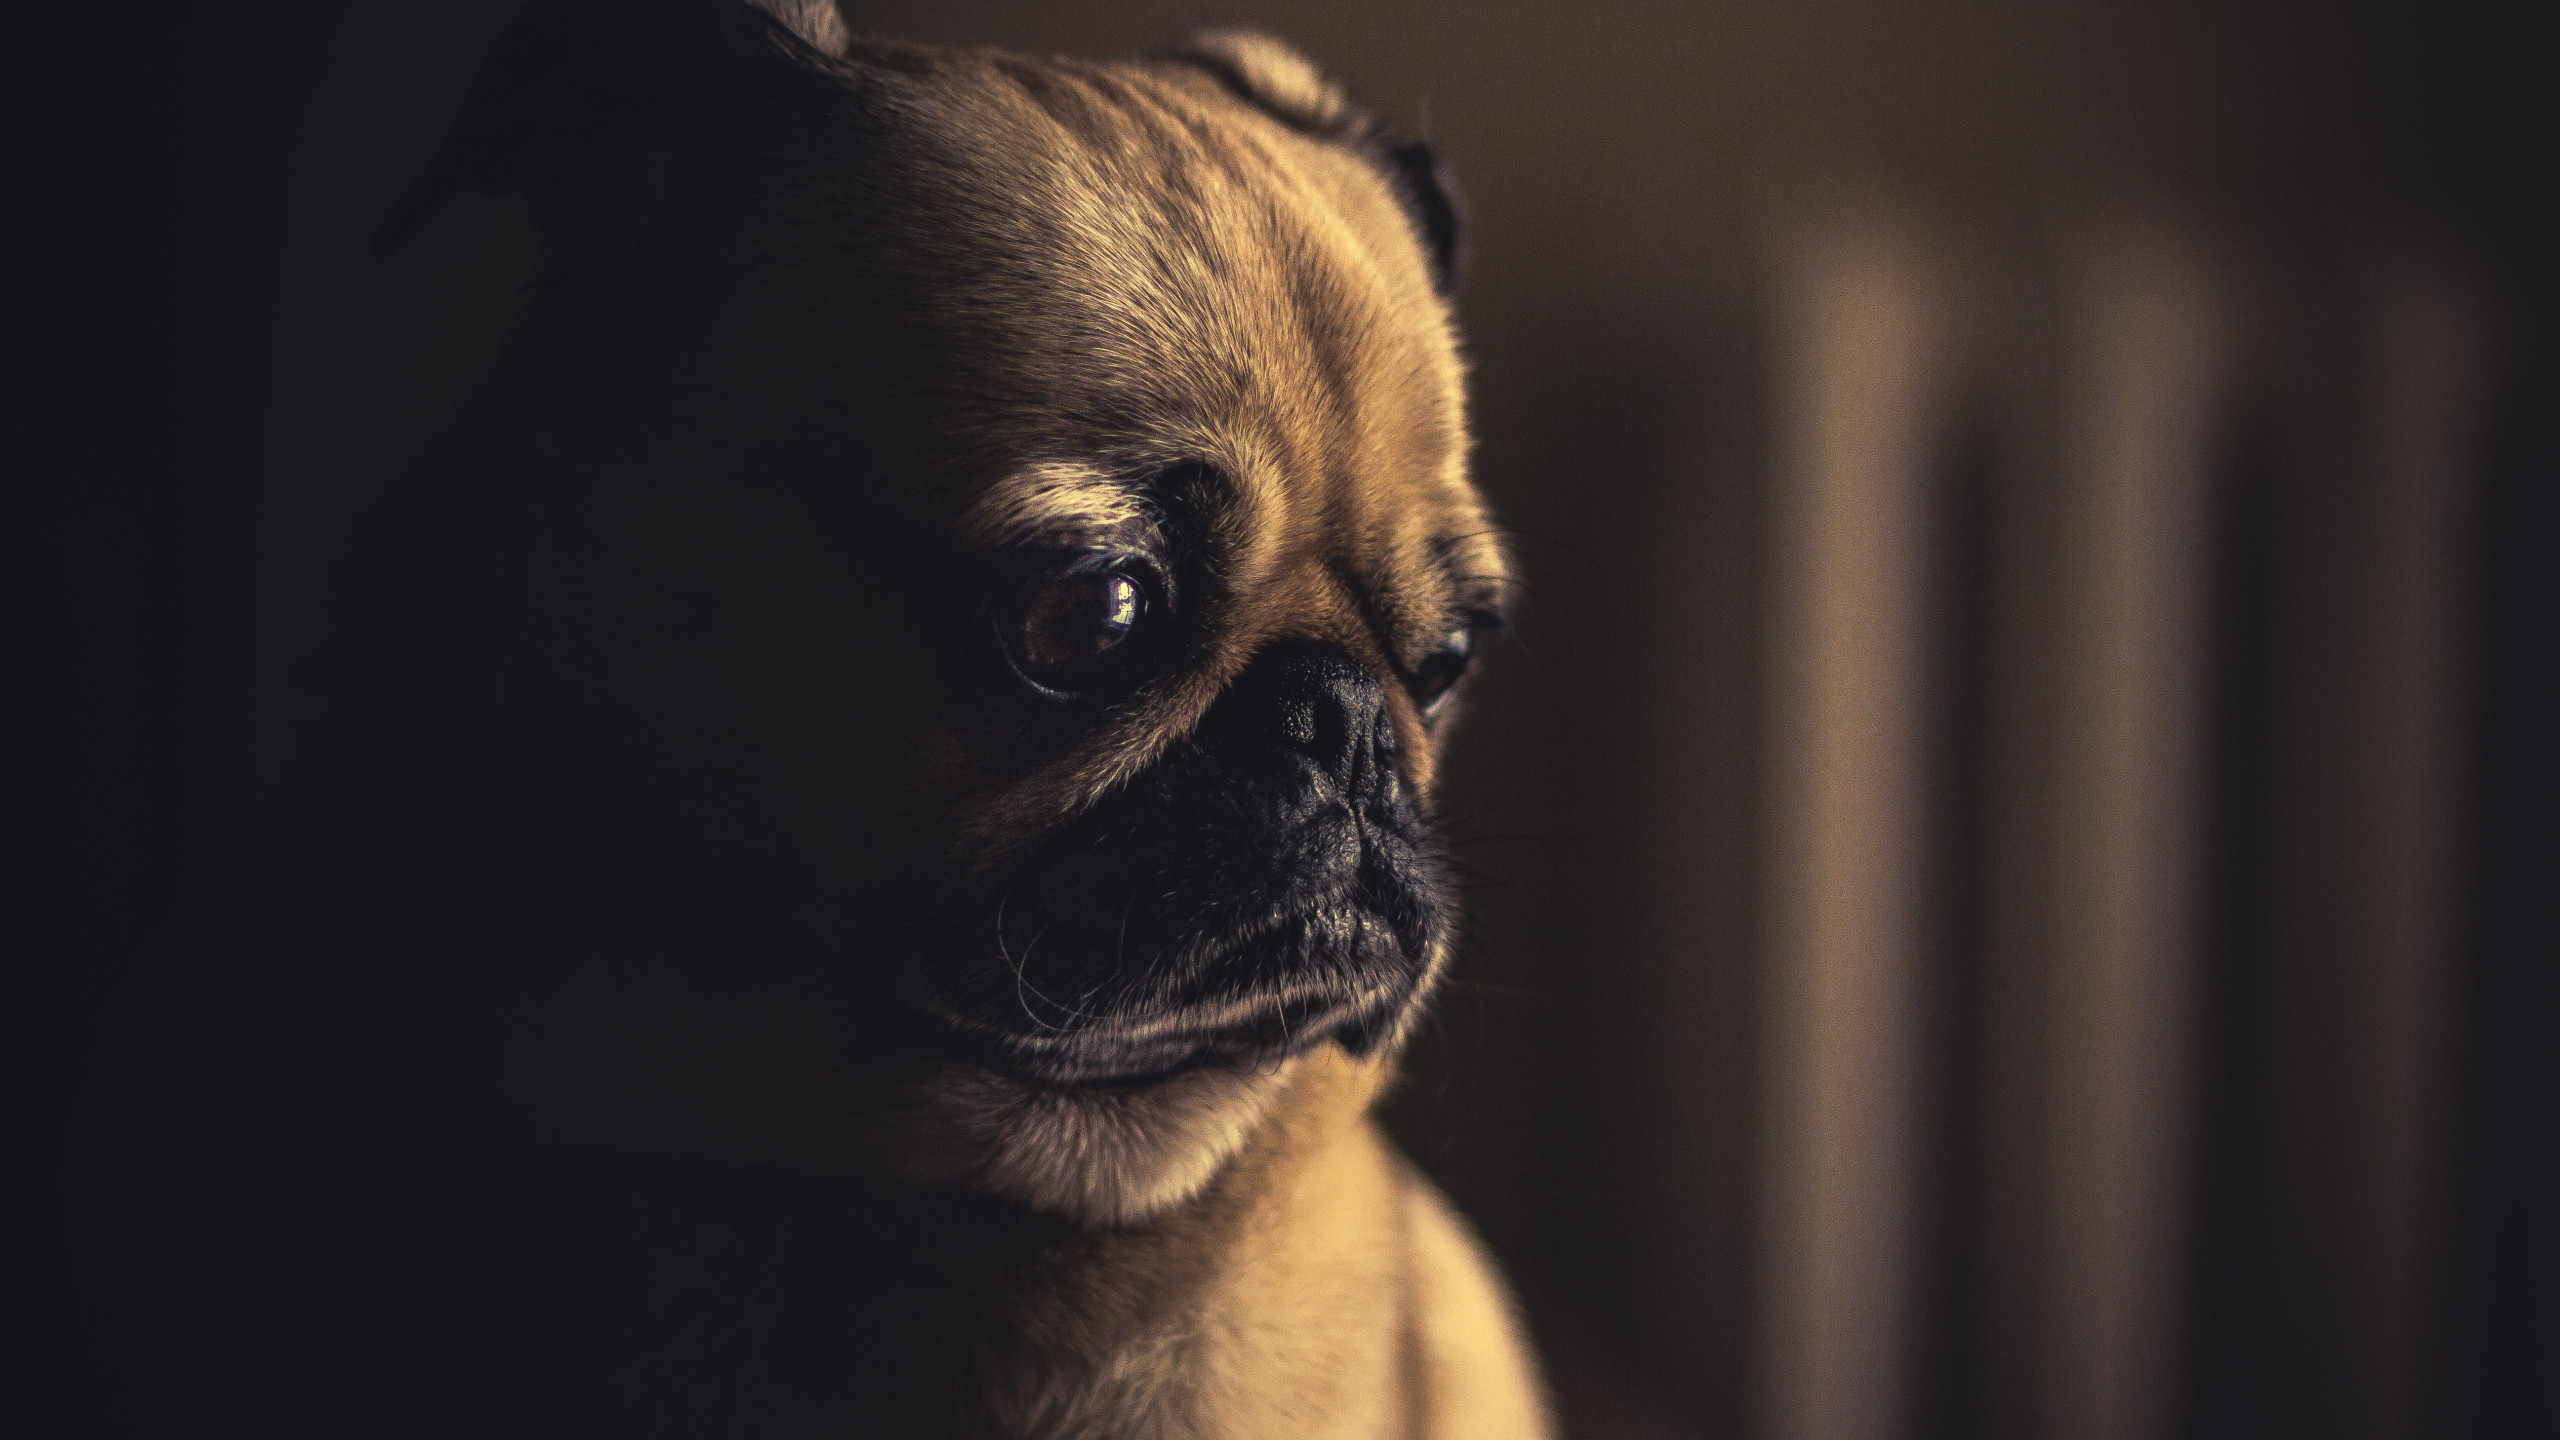 So cute this pug puppy wallpaper 2560x1440